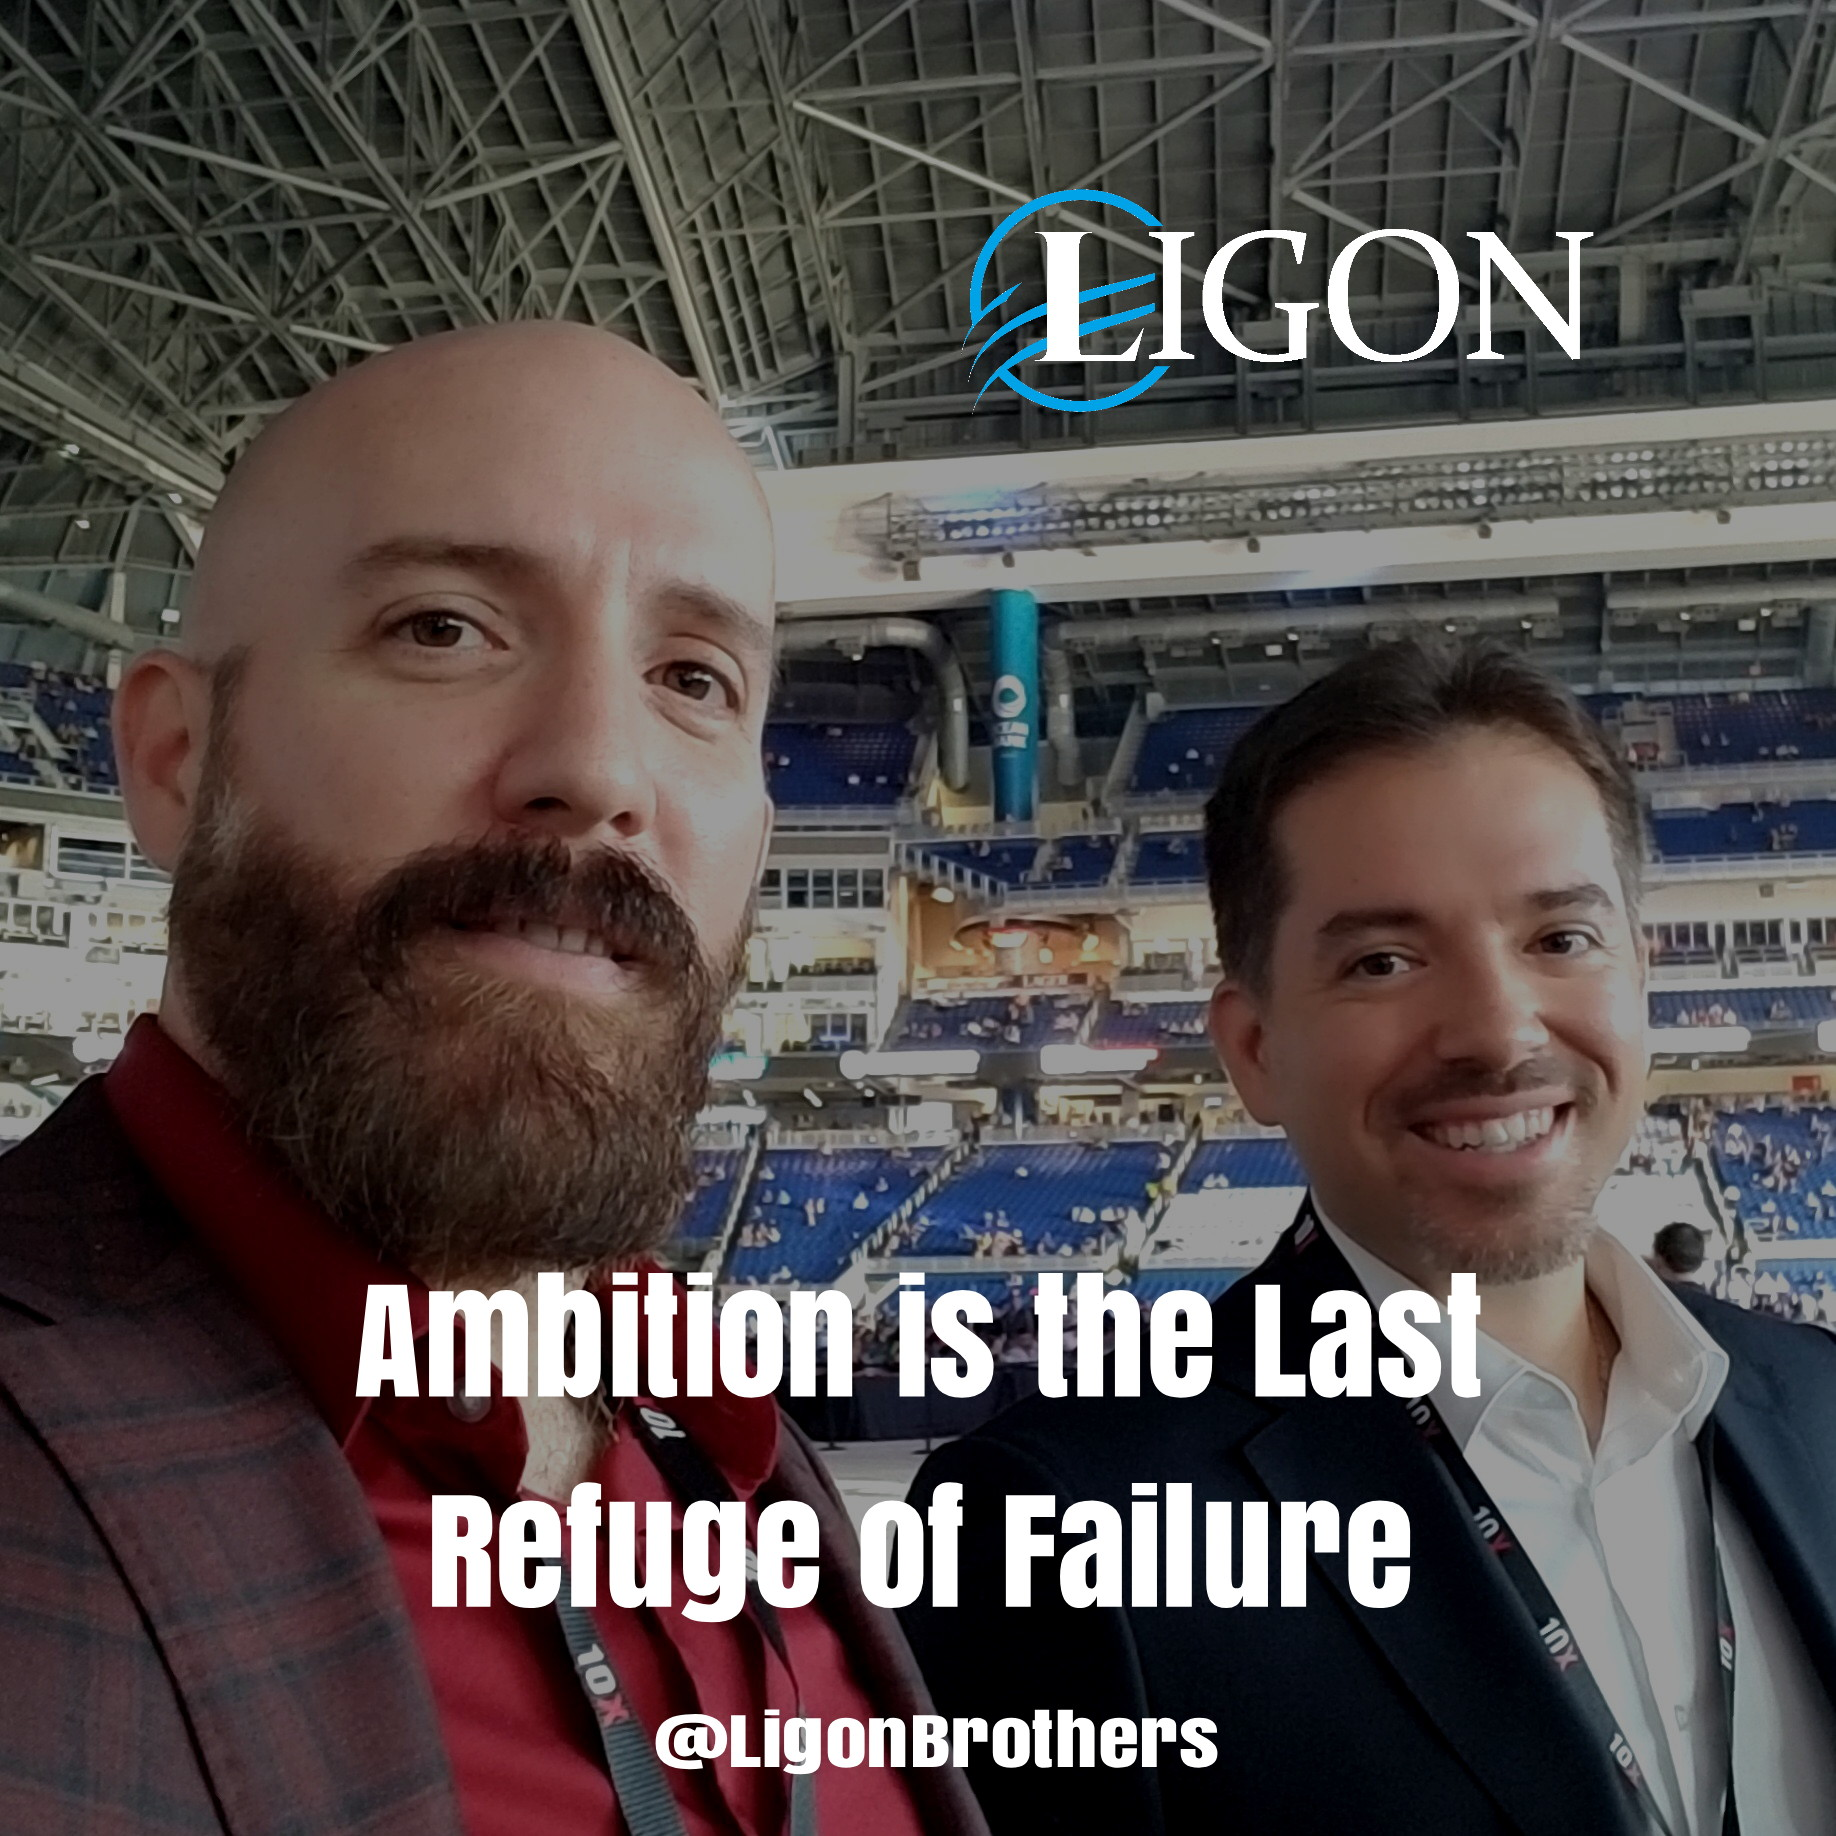 The Ligon Brothers, Ambition Quote